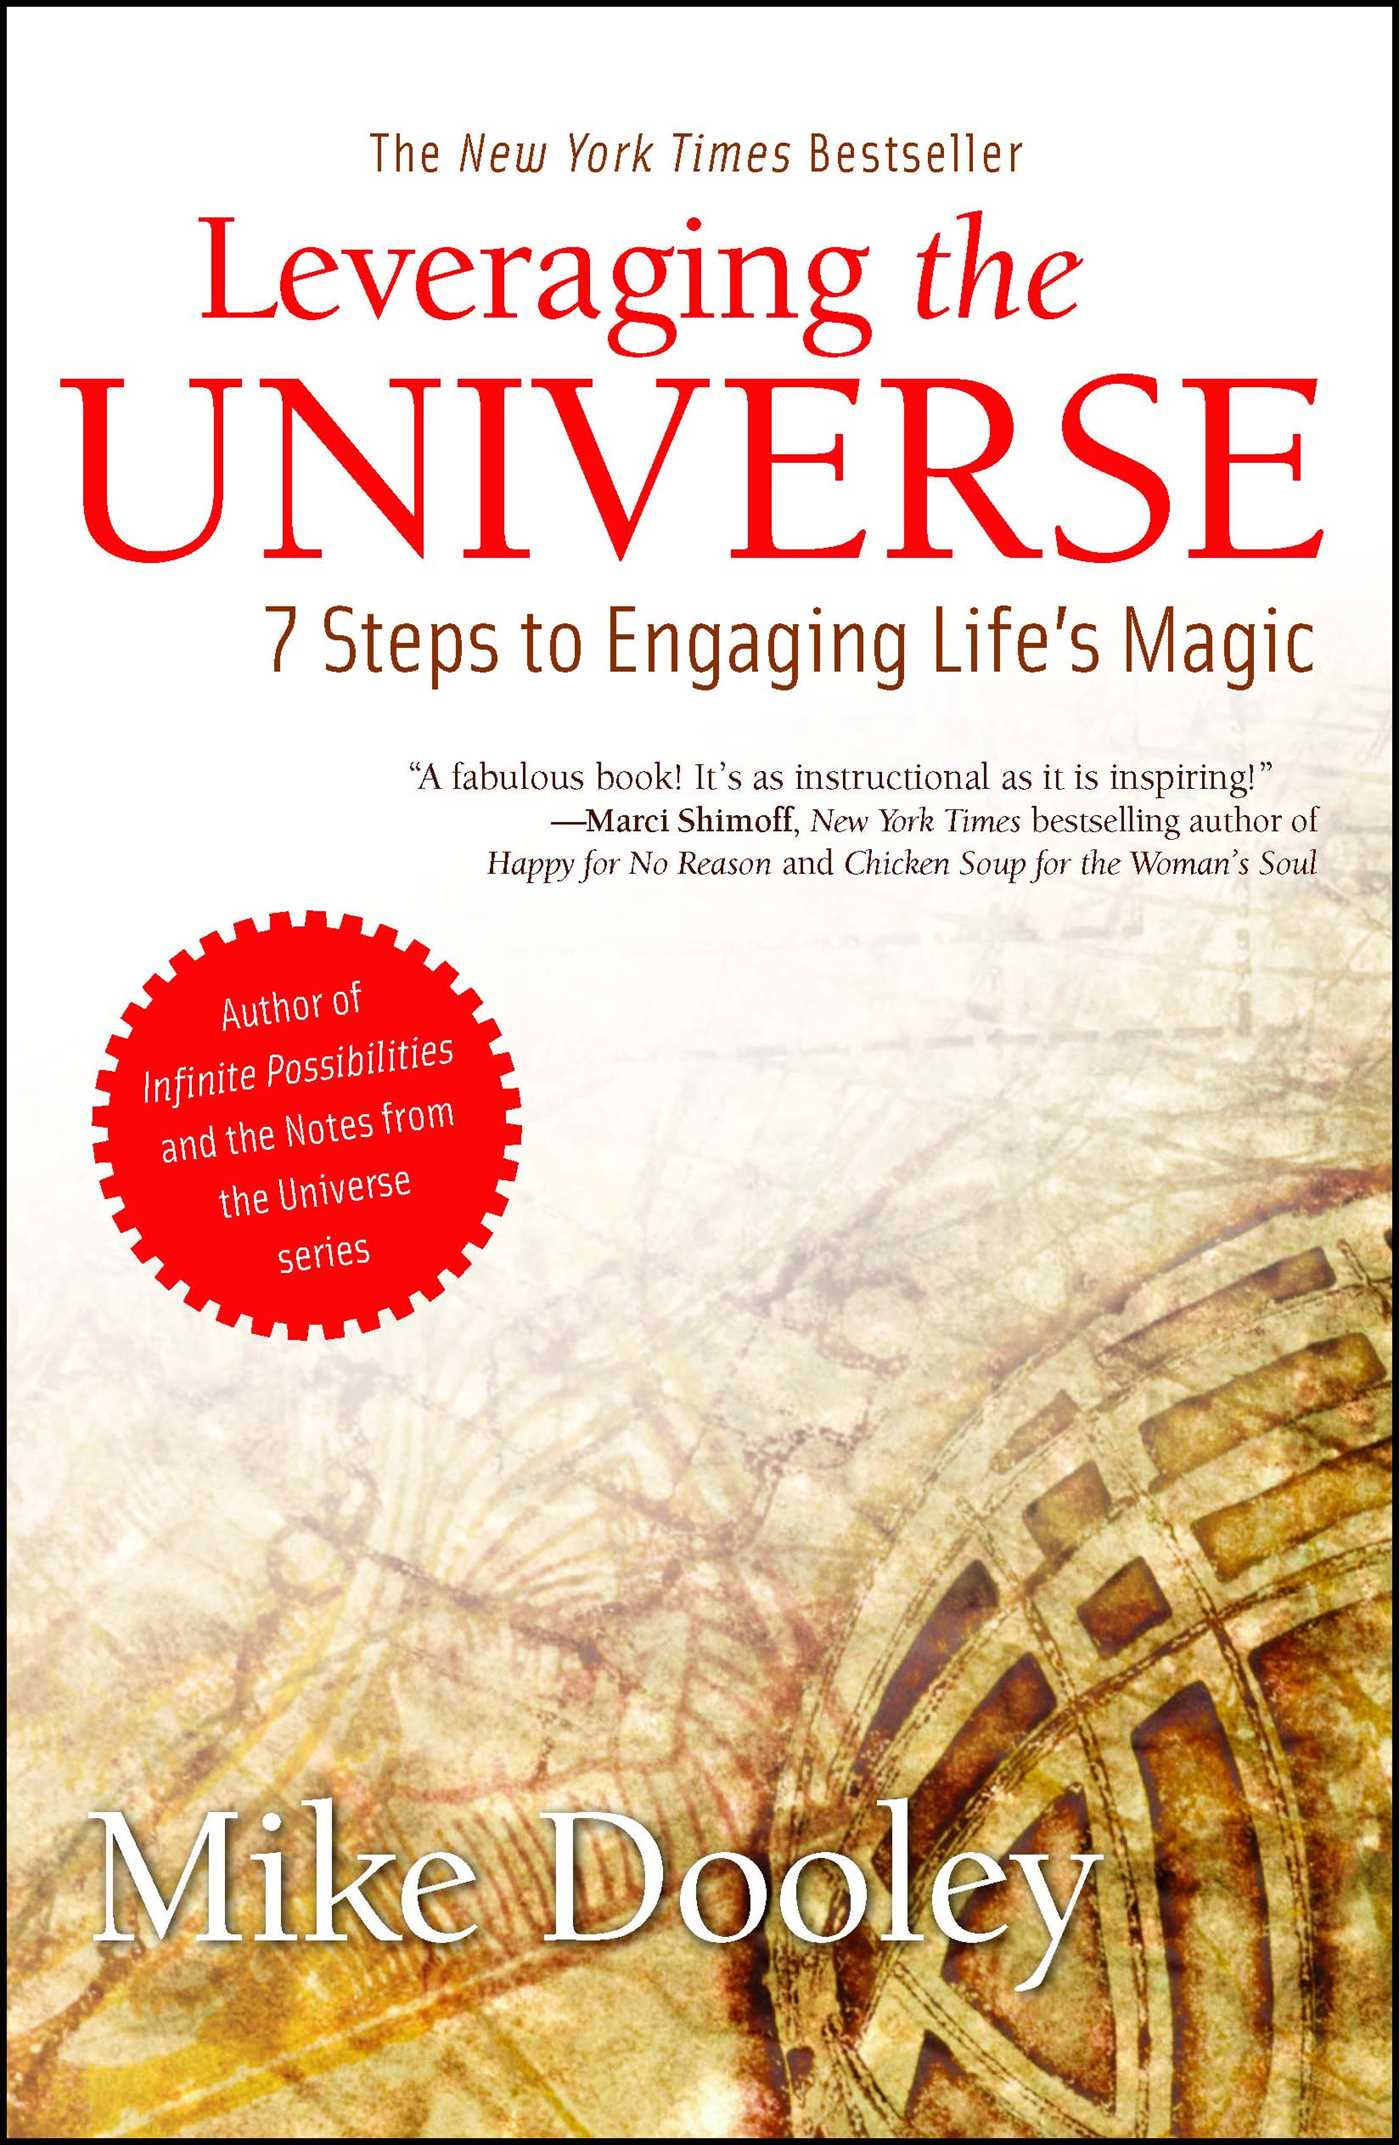 Leveraging-the-universe-9781451633917_hr